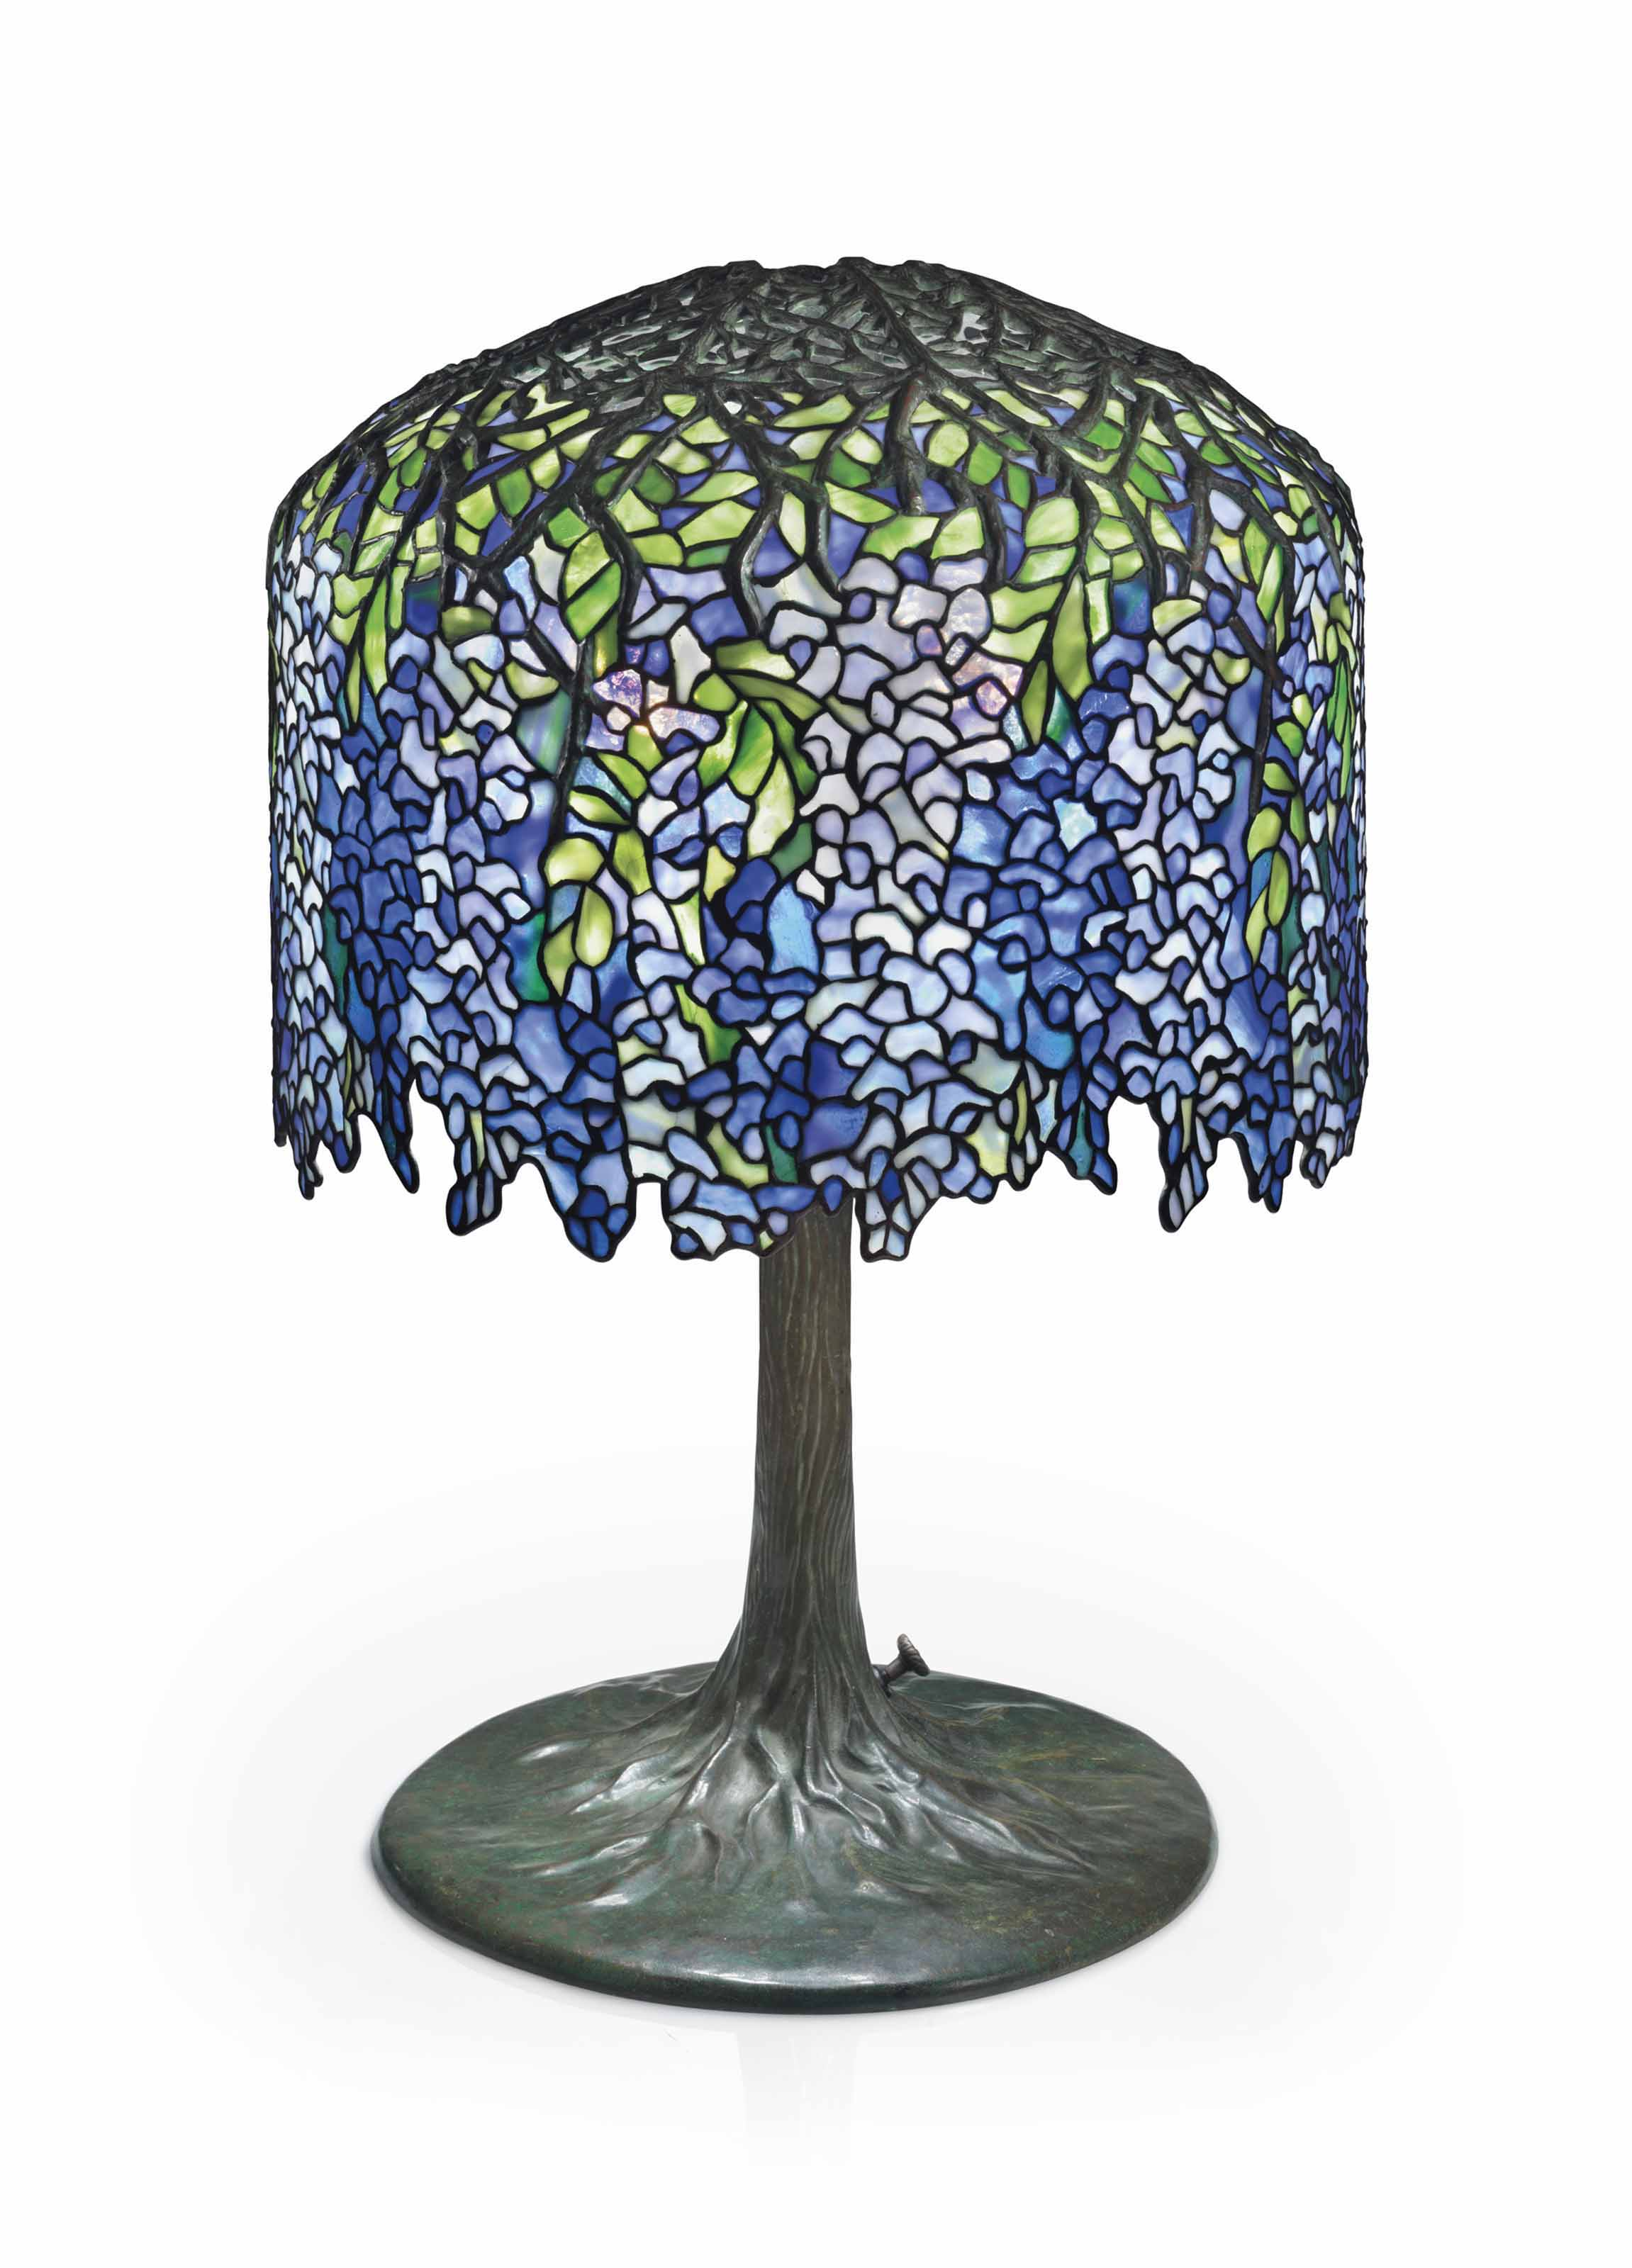 Tiffany Lamps 10 Things You Need To Know Christies Rewiring A Two Socket Lamp Studios Wisteria Leaded Glass And Bronze Table Circa 1905 26 In 68 Cm High 18 458 Diameter Of Shade